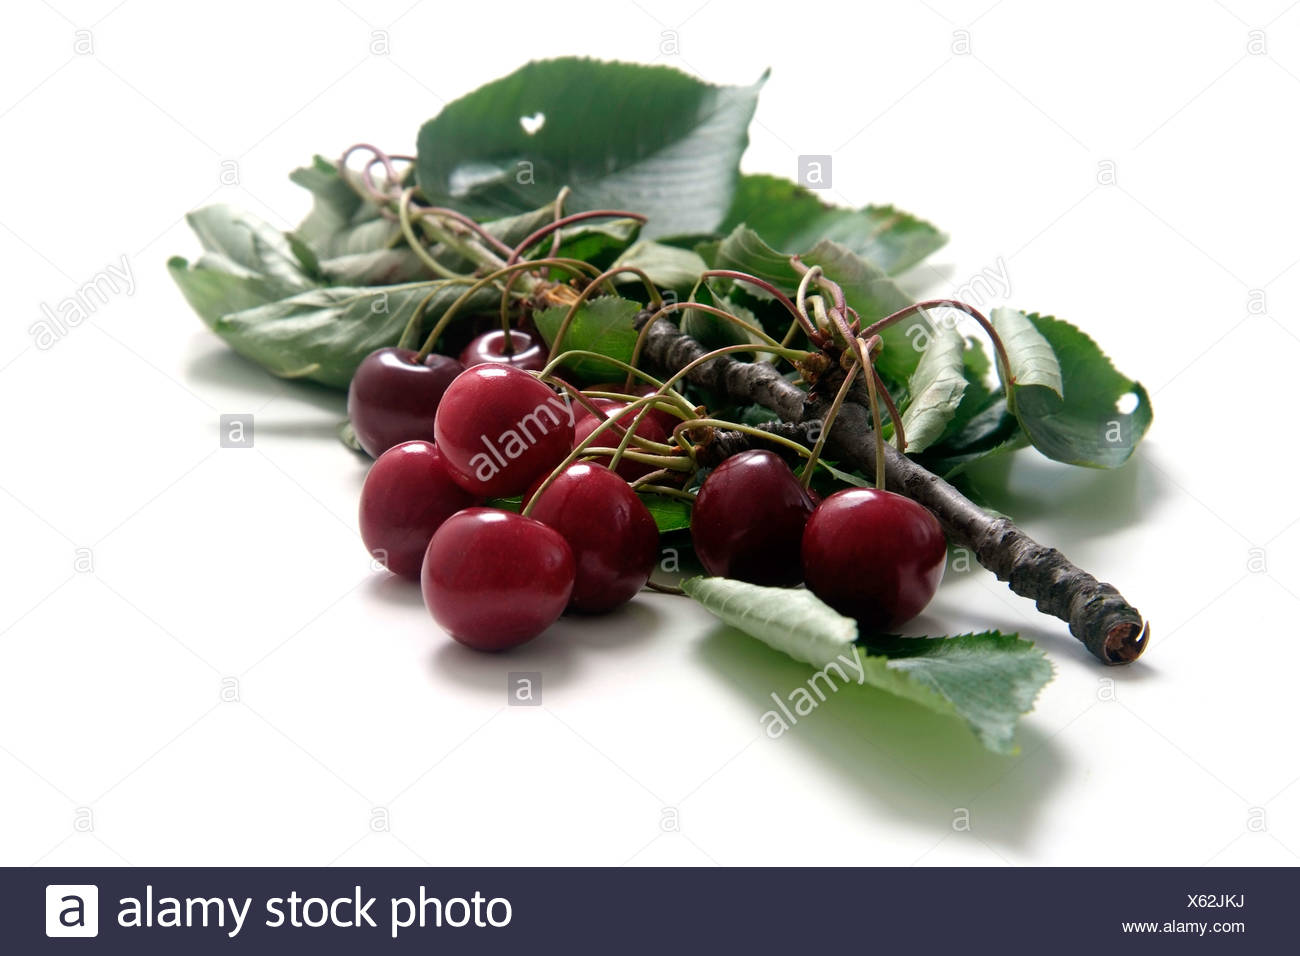 Cherry variety Büttners roter Knorpelkirsche  with twig and leaves - Stock Image